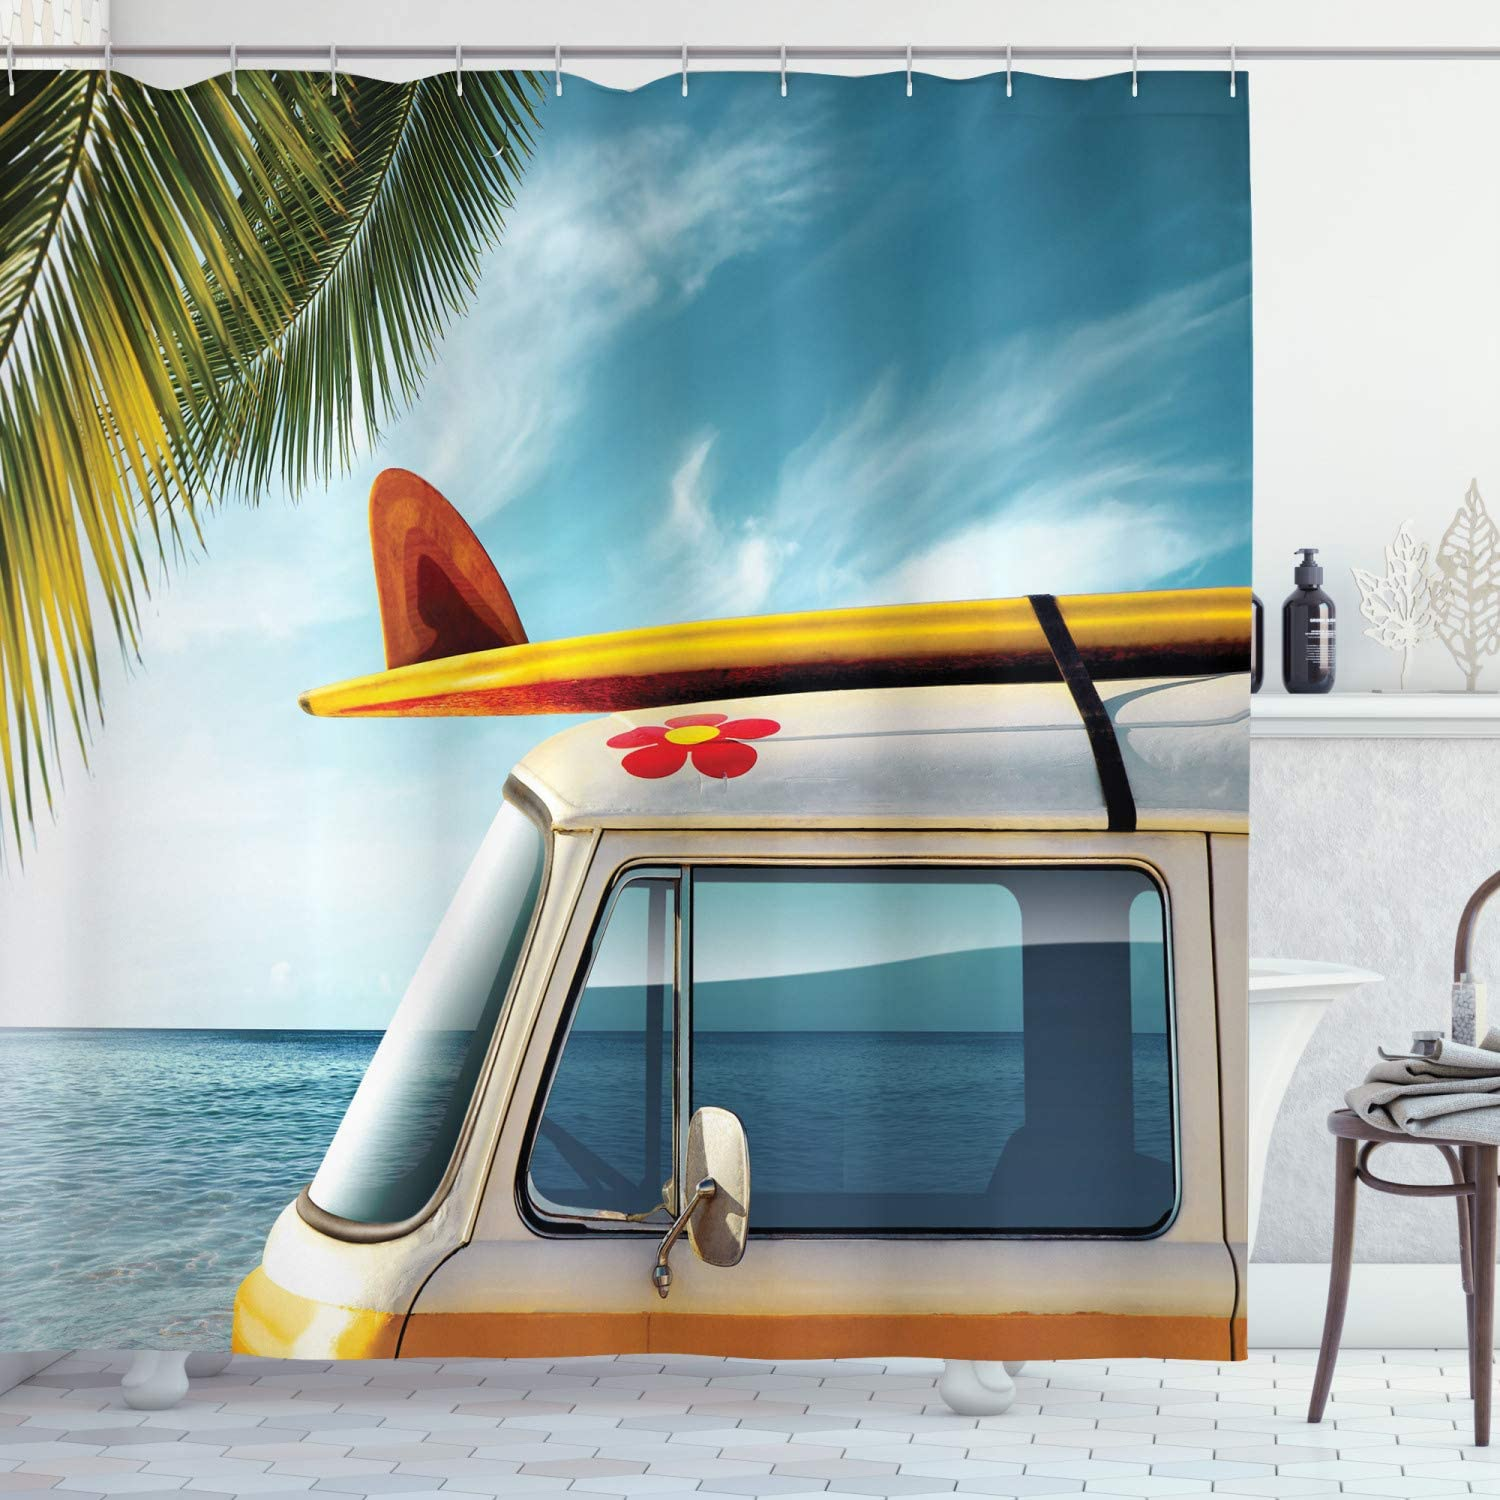 """Ambesonne Surfboard Shower Curtain, Vintage Van in The Beach with a Surfboard on The Roof Journey Spring Sky Season, Cloth Fabric Bathroom Decor Set with Hooks, 84"""" Long Extra, Yellow"""